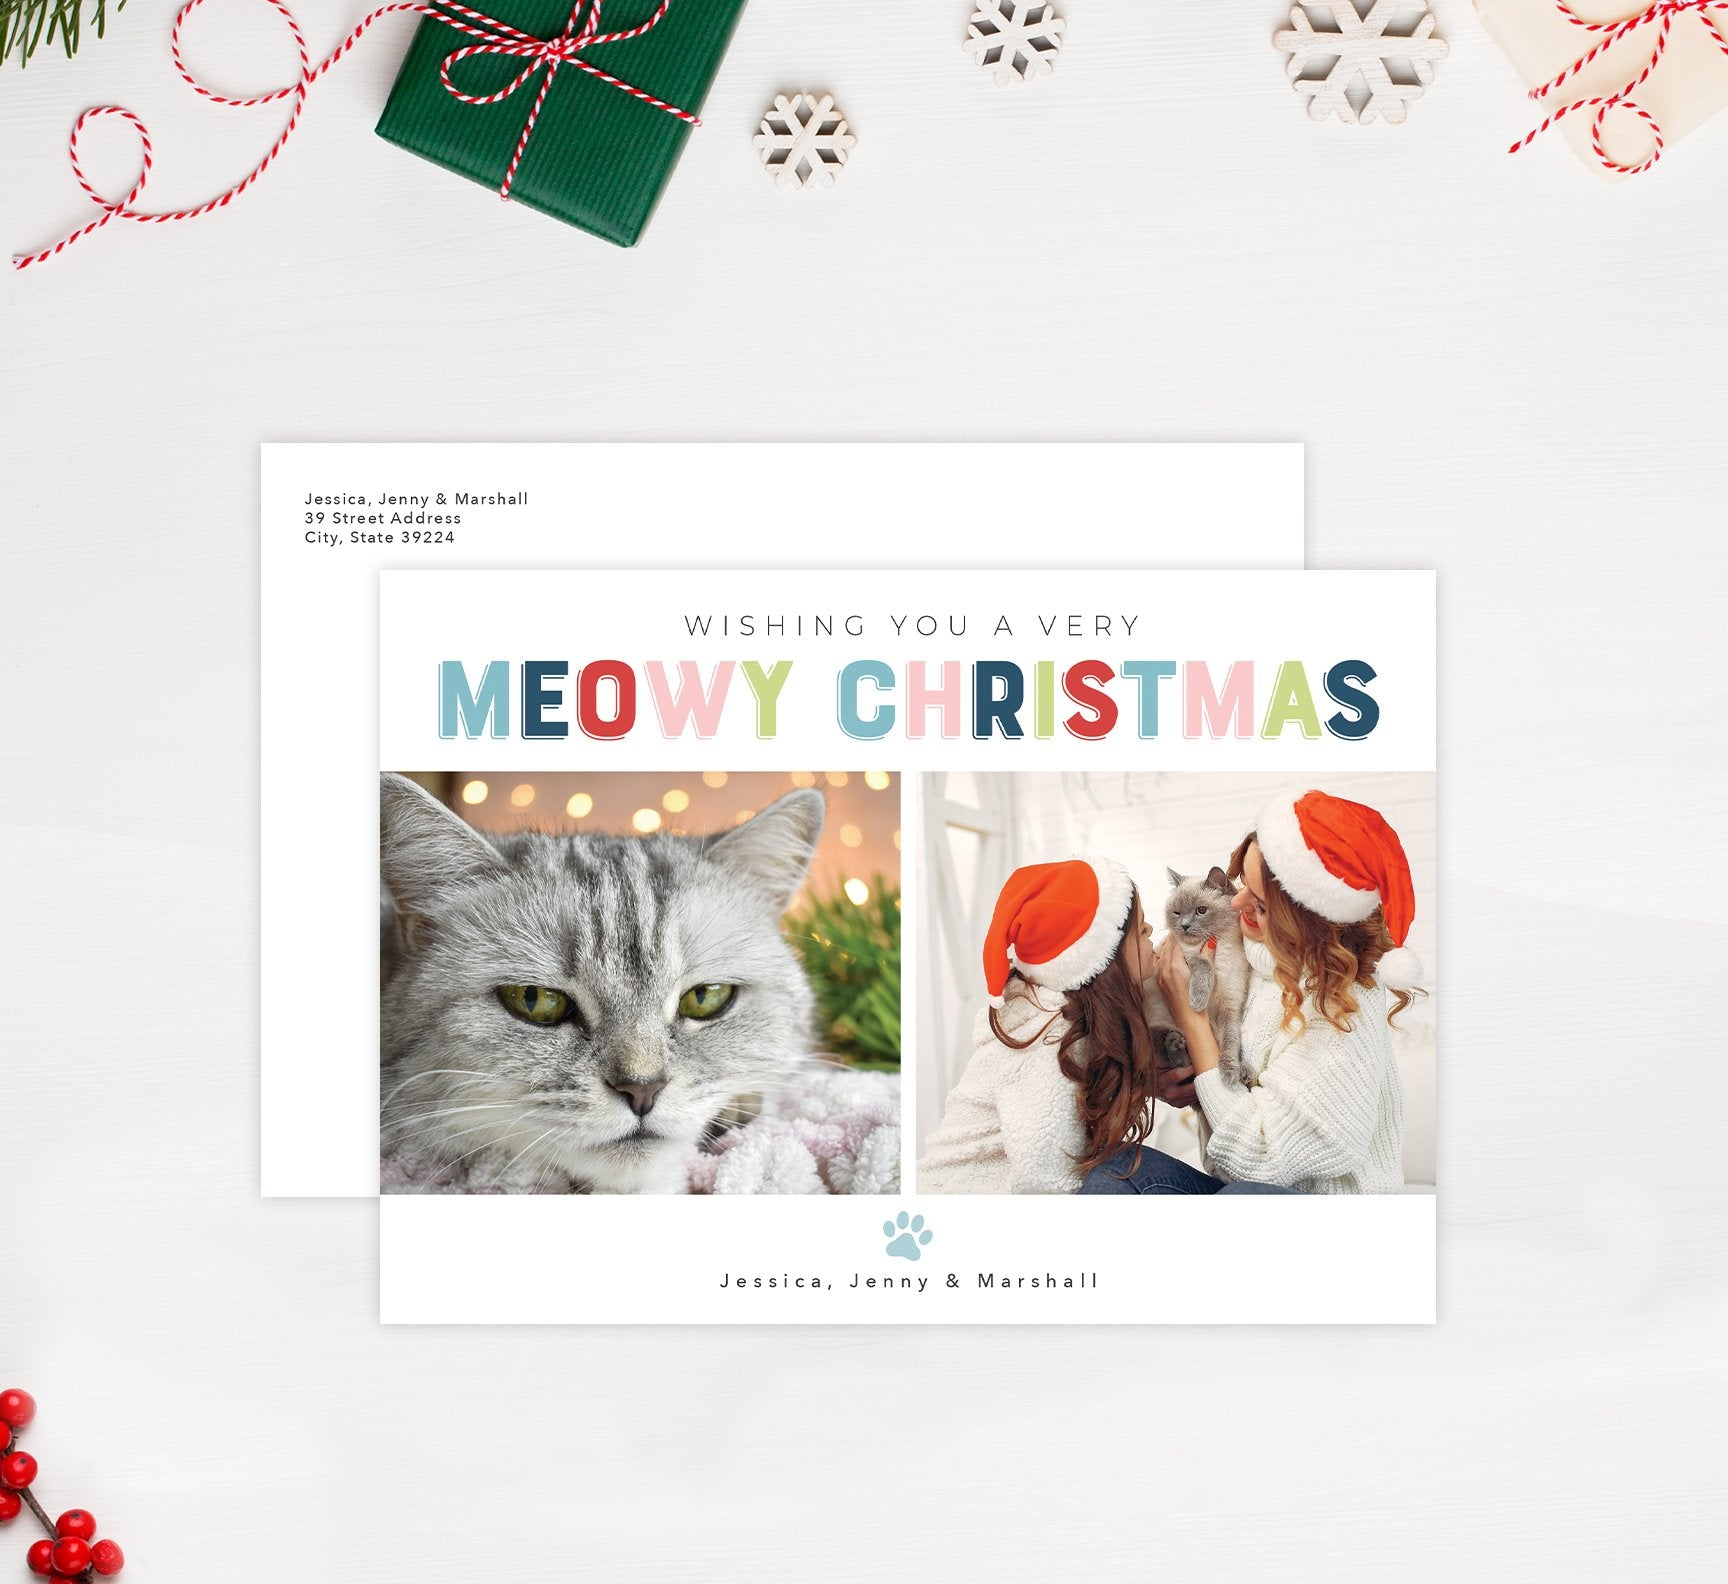 Meowy Christmas Holiday Card Mockup; Holiday card with envelope and return address printed on it.